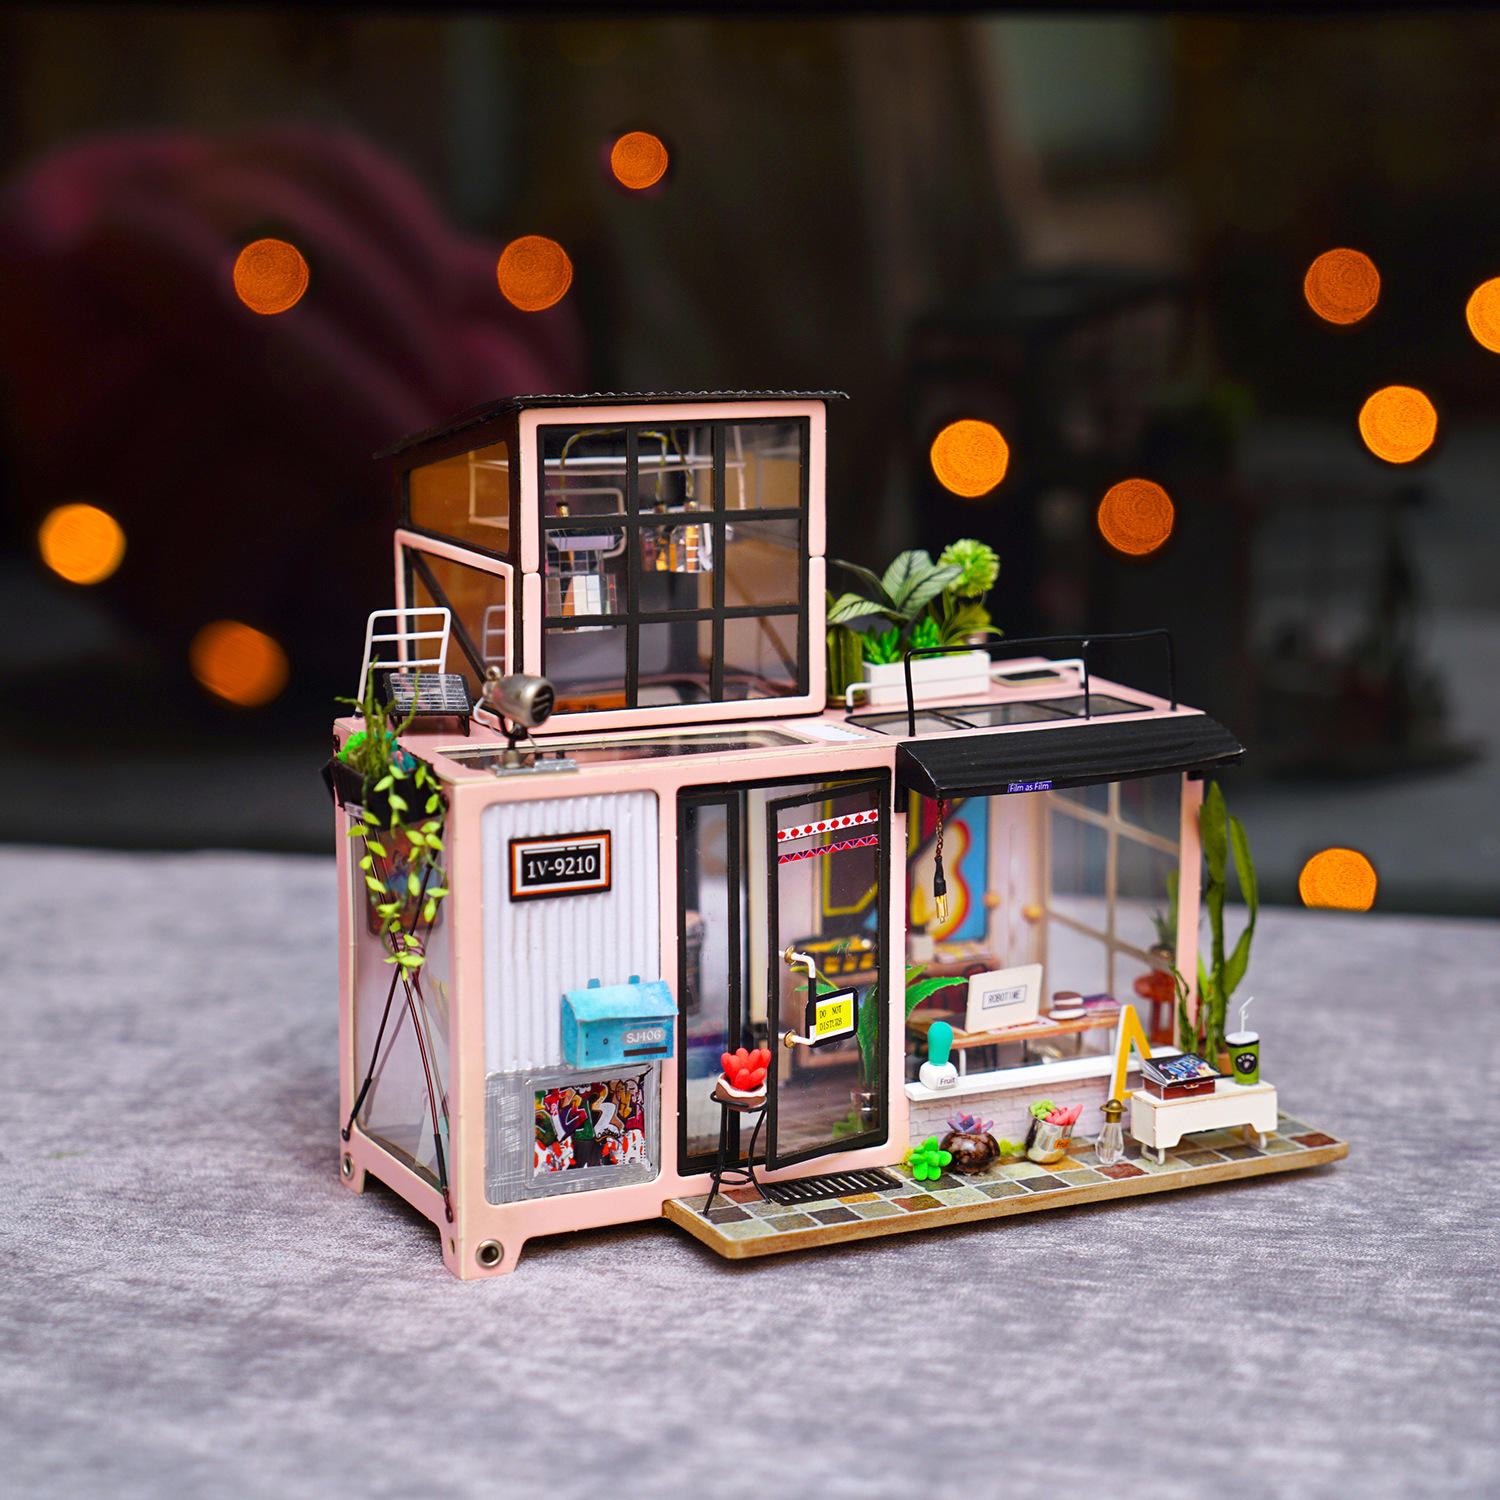 Robotime DG13 Kevin's Studio DIY Doll House 23*27.1*22cm With Furniture Light Gift Decor Collection